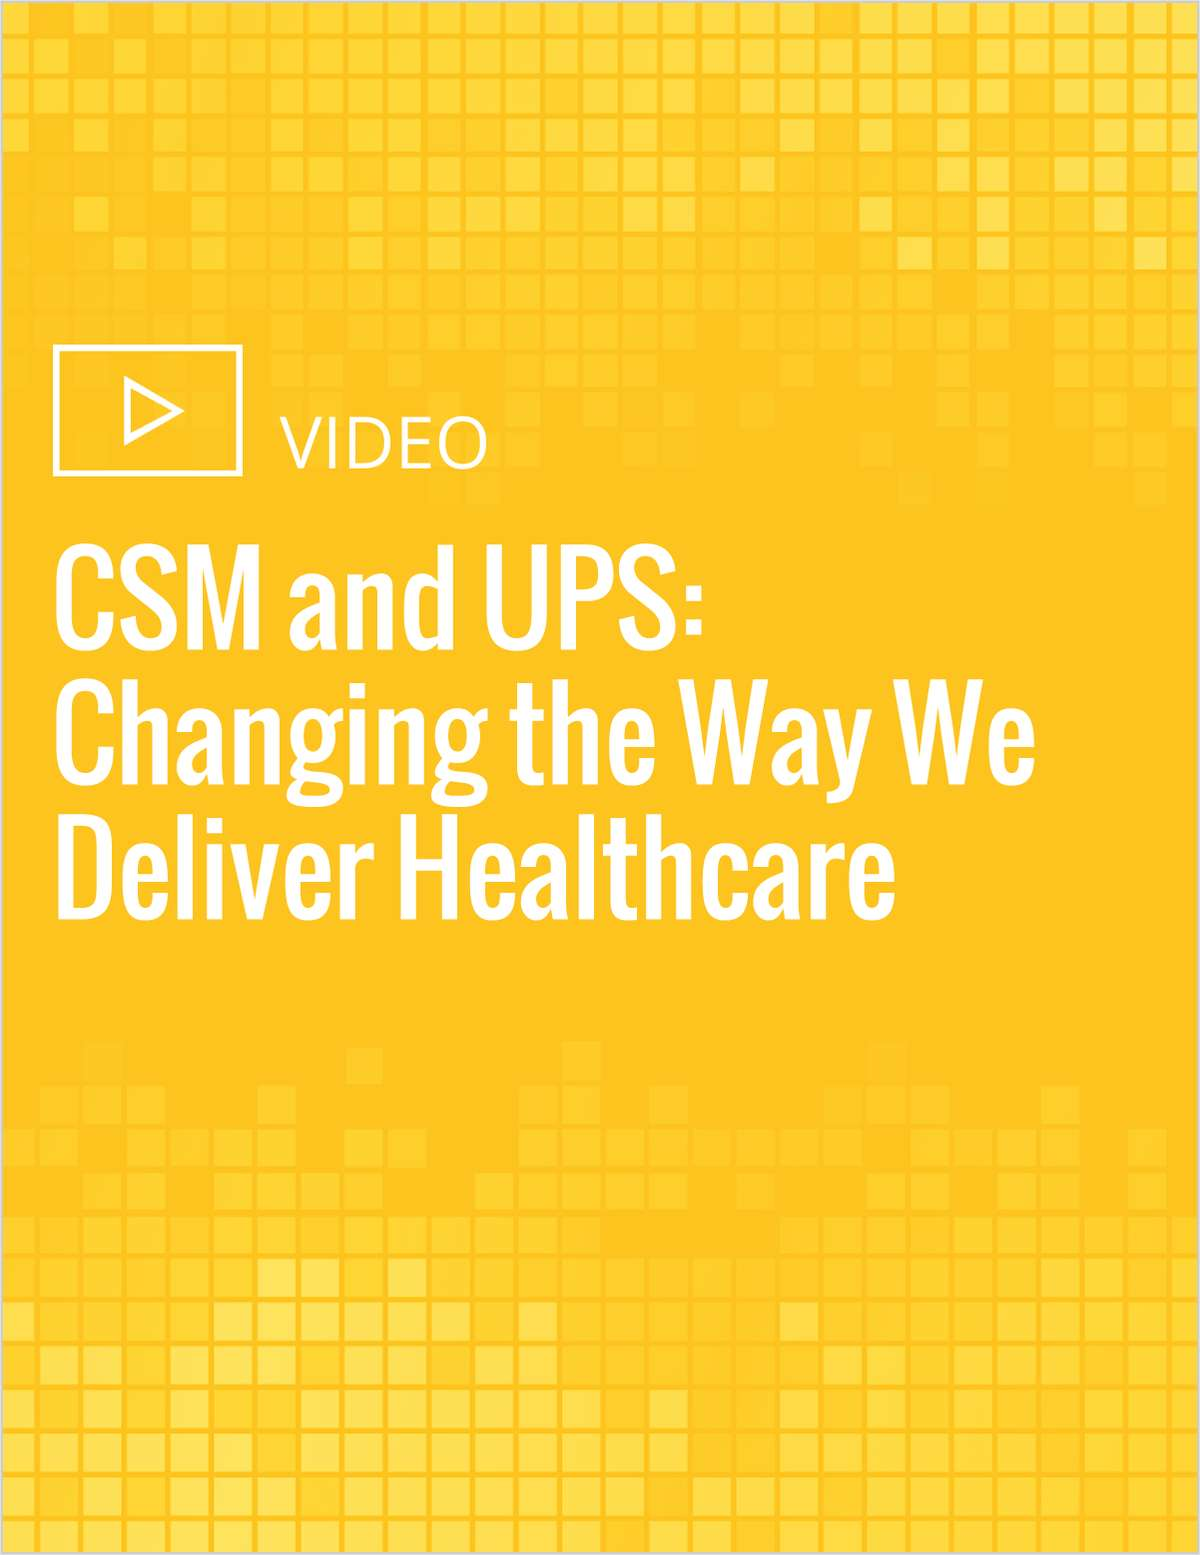 CSM and UPS: Changing the Way We Deliver Healthcare